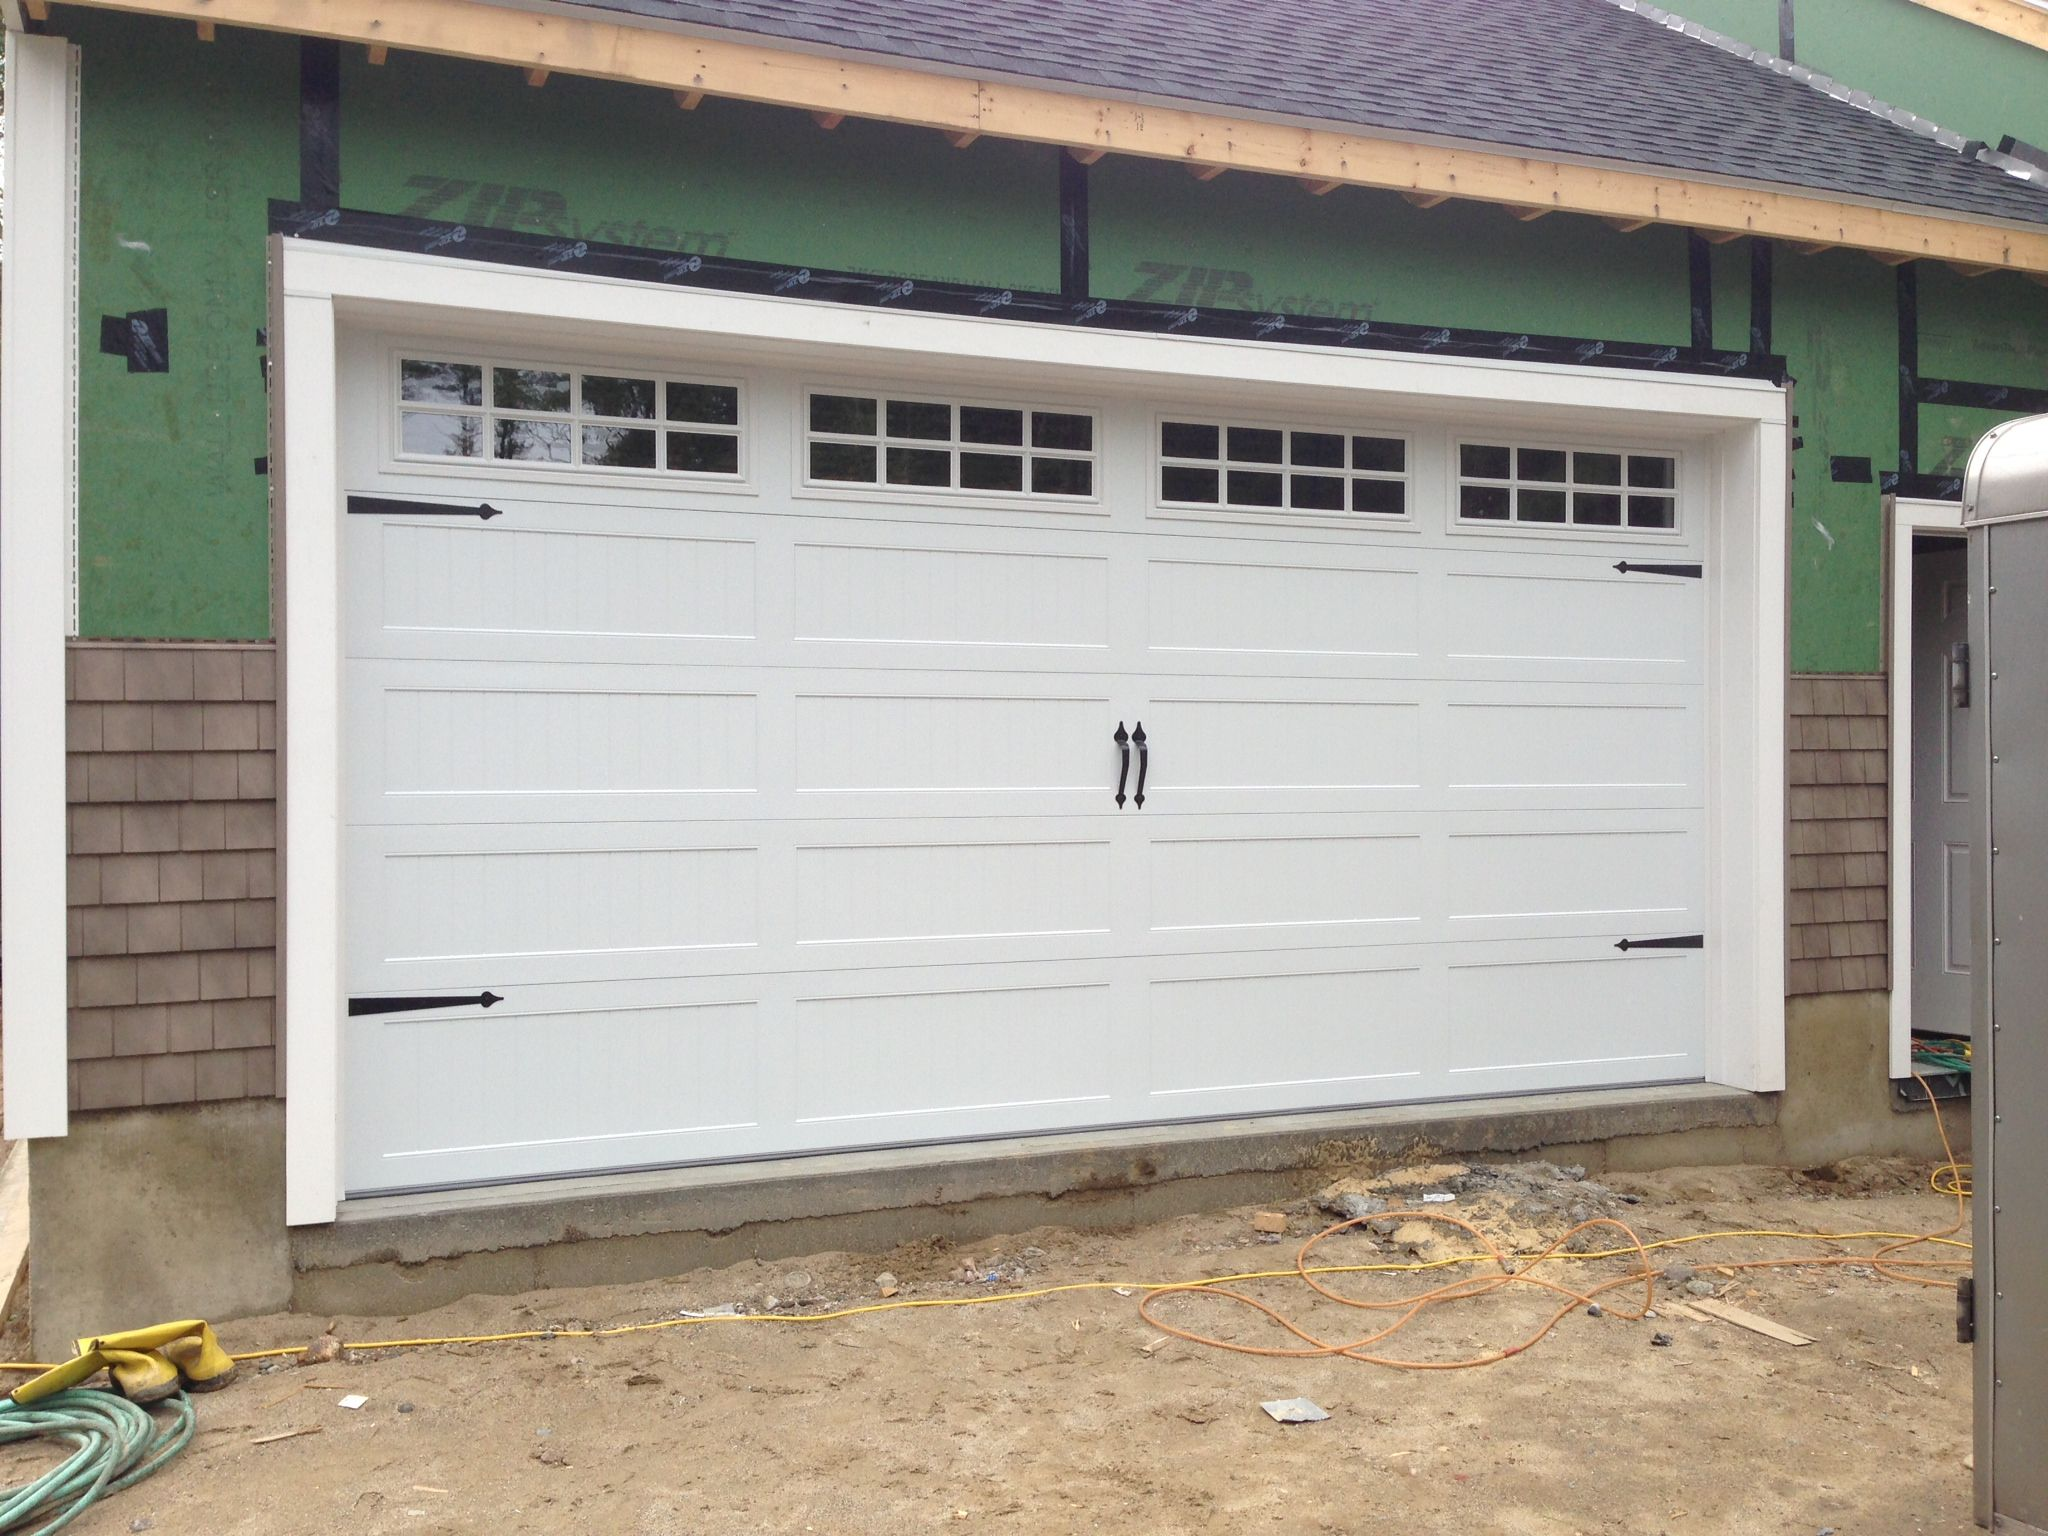 Carriage House Garage Doors Garage Doors Cheap Garage Doors Carriage House Garage Doors